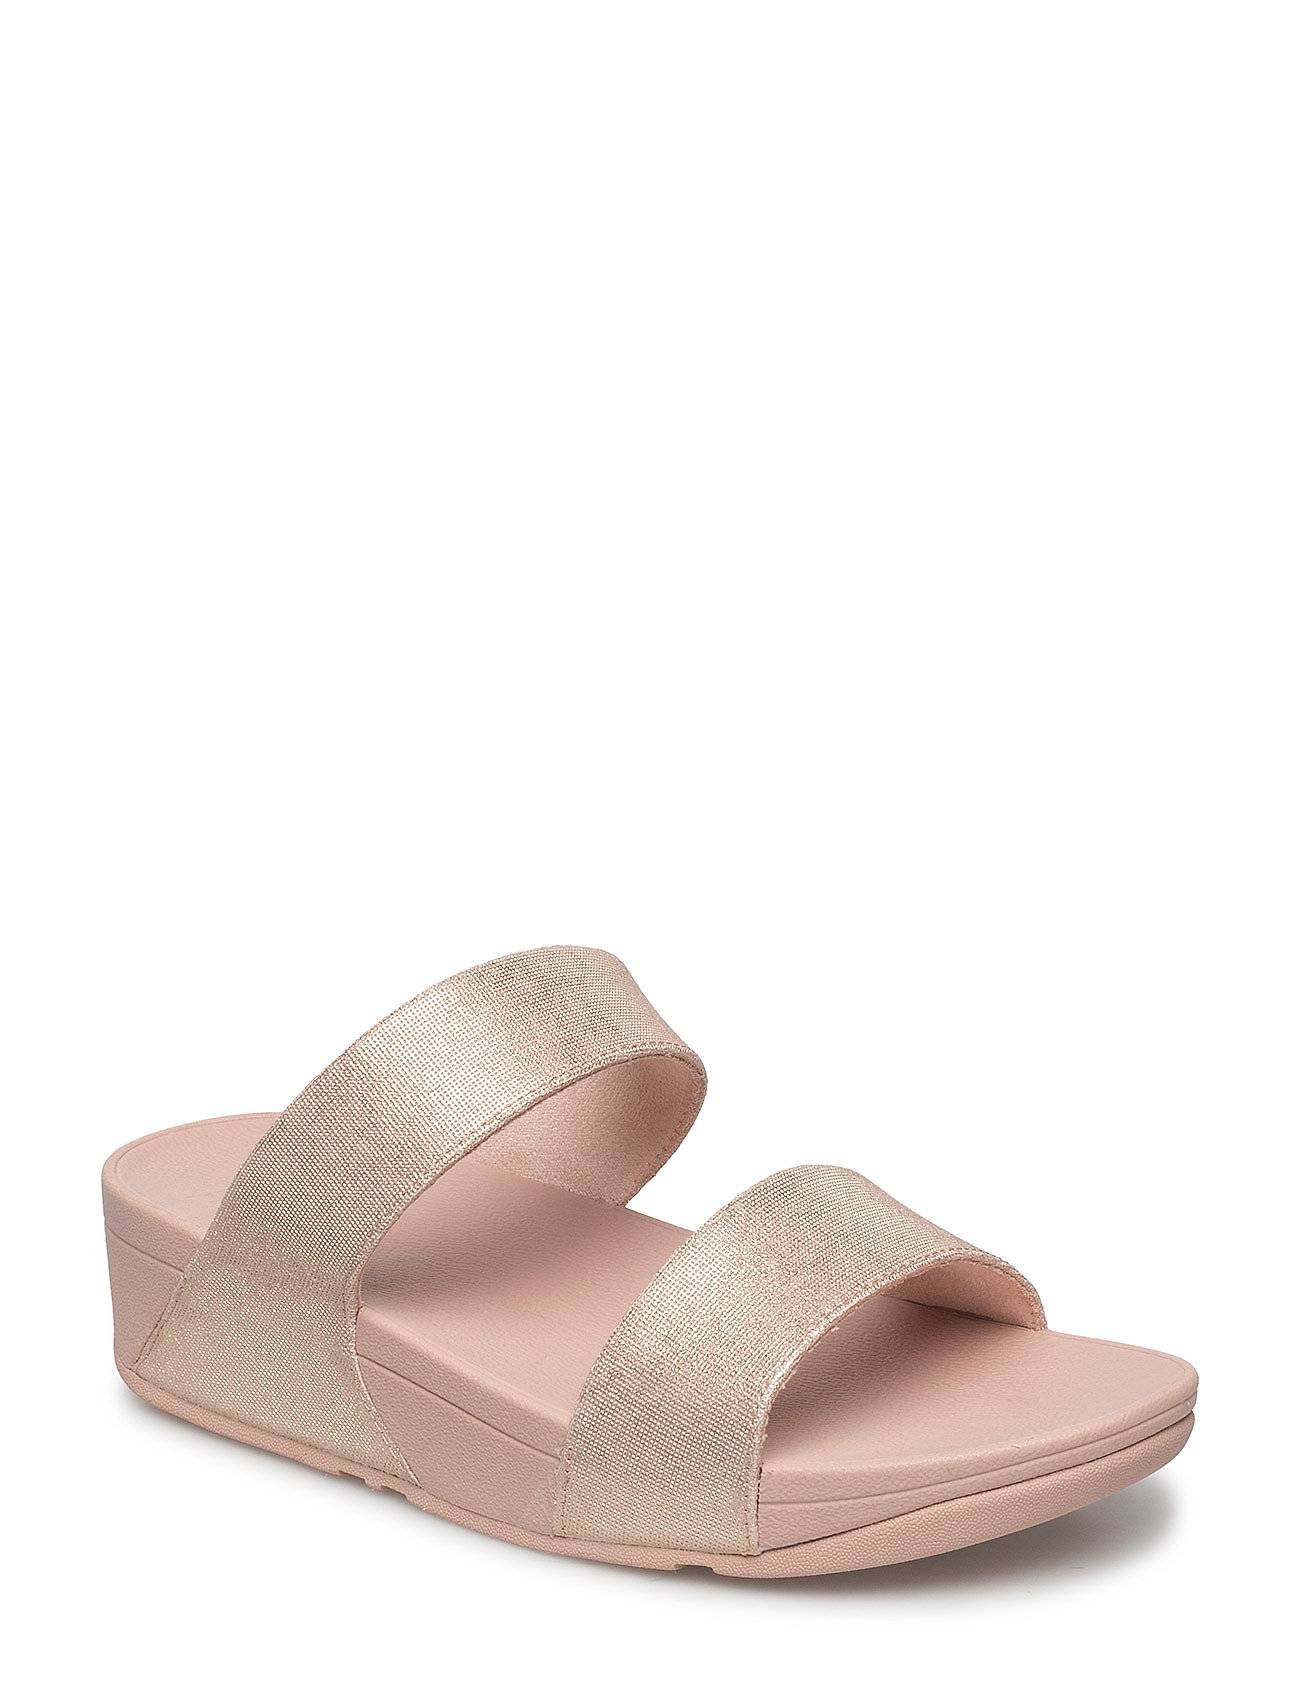 FitFlop Shimmy Slide Foil